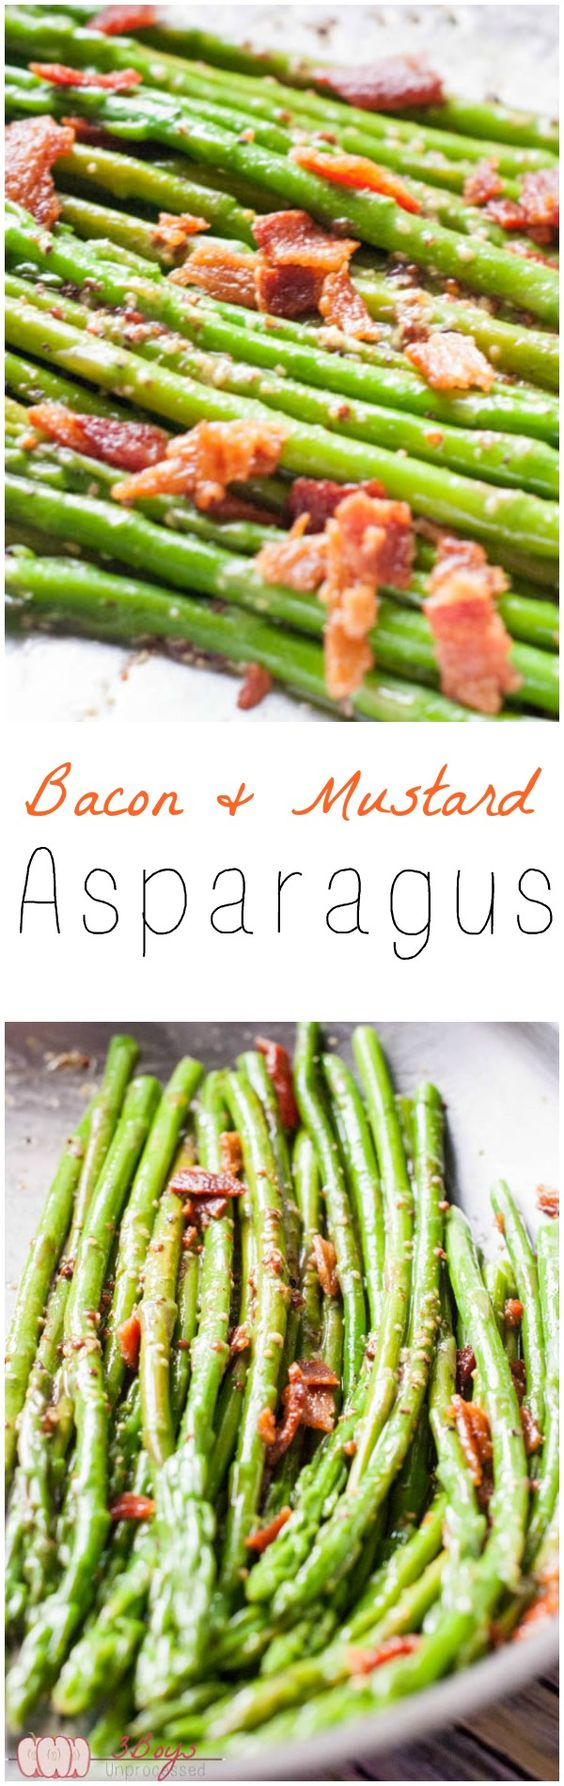 Bacon and Mustard Asparagus | Mustard, Bacon and Super Easy